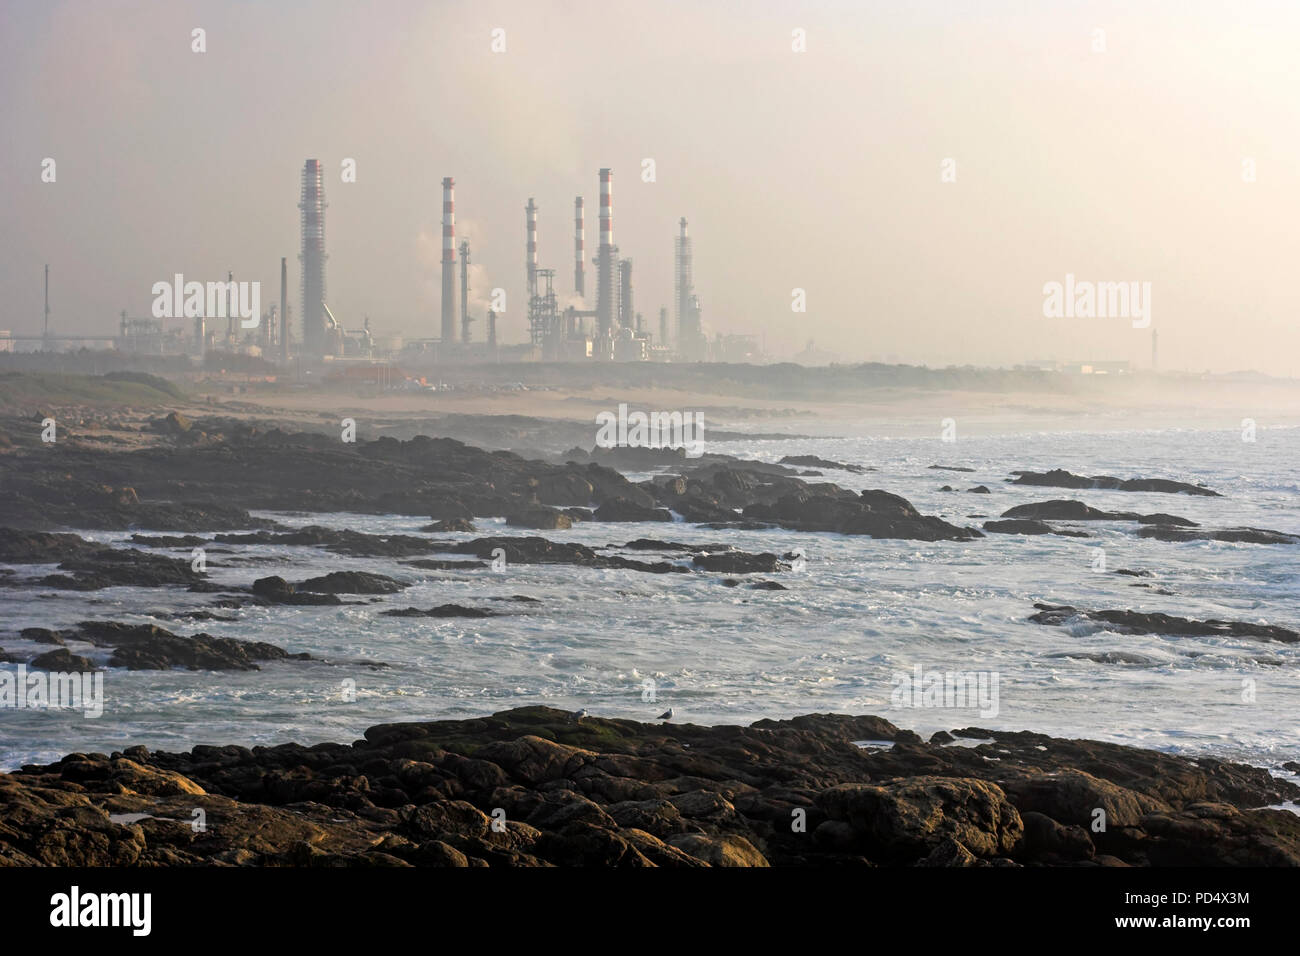 Oil refinery near the sea in a mysty evening - Stock Image